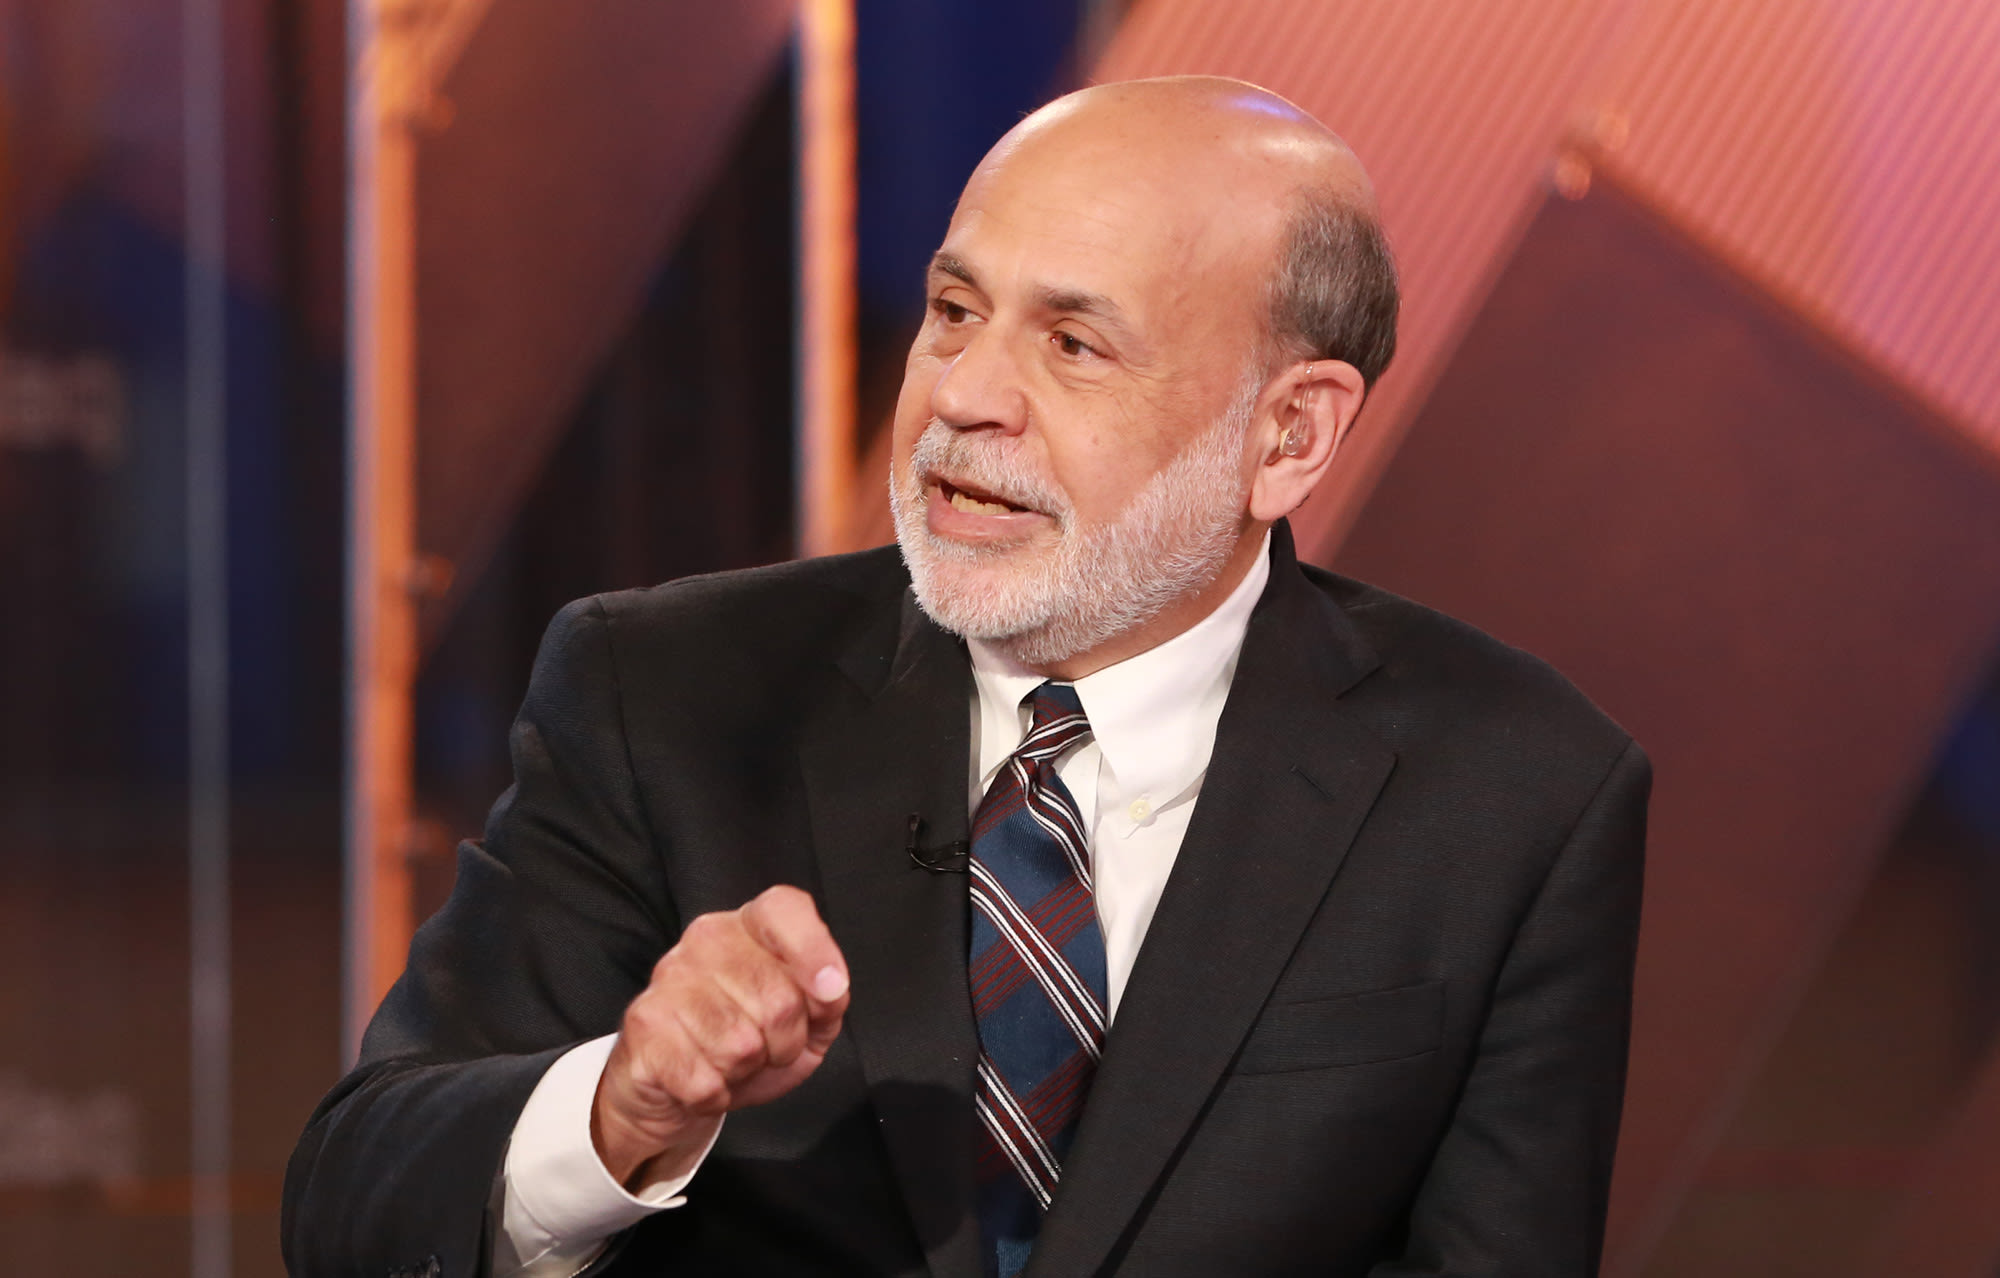 Former Fed Chairman Ben Bernanke sees 'very sharp' recession, followed by 'fairly quick' rebound